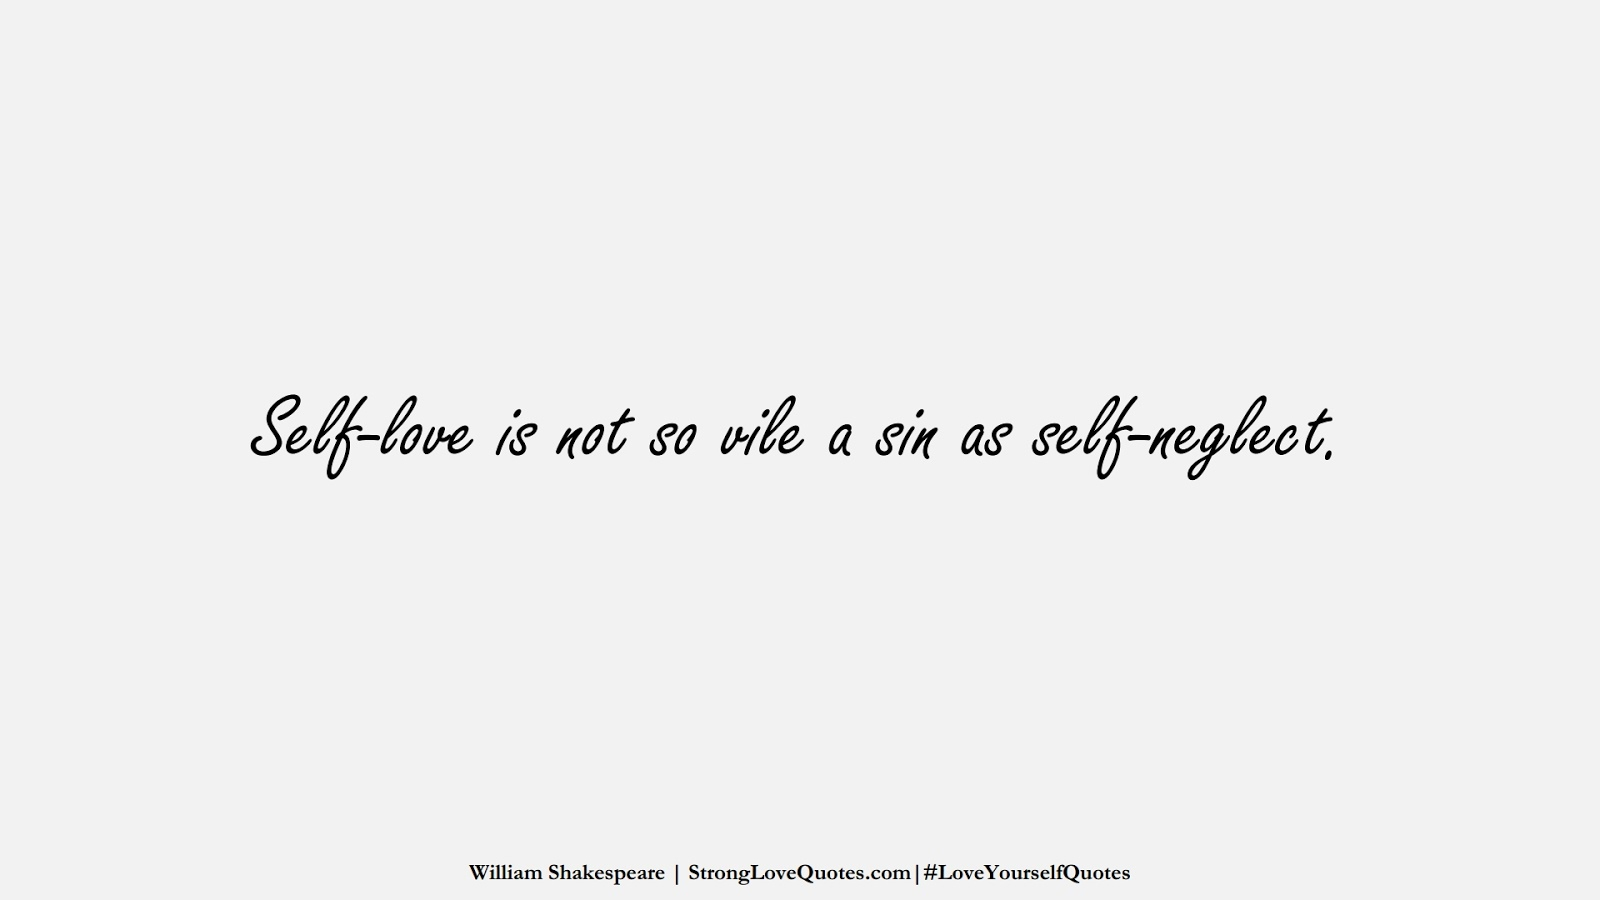 Self-love is not so vile a sin as self-neglect. (William Shakespeare);  #LoveYourselfQuotes